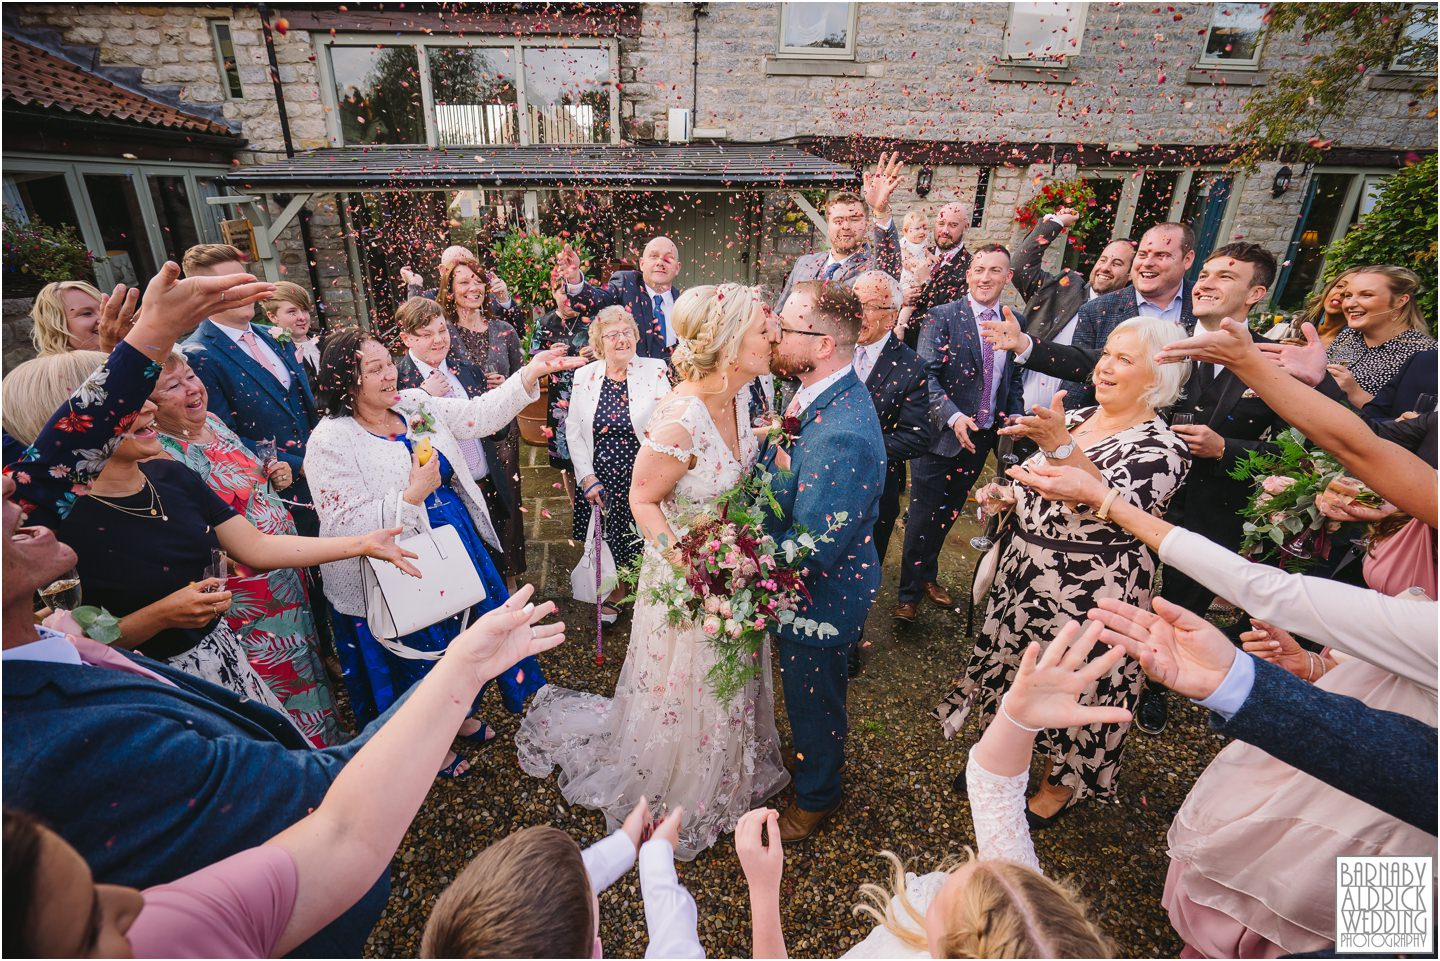 Star Inn confetti wedding photos in Harome Yorkshire